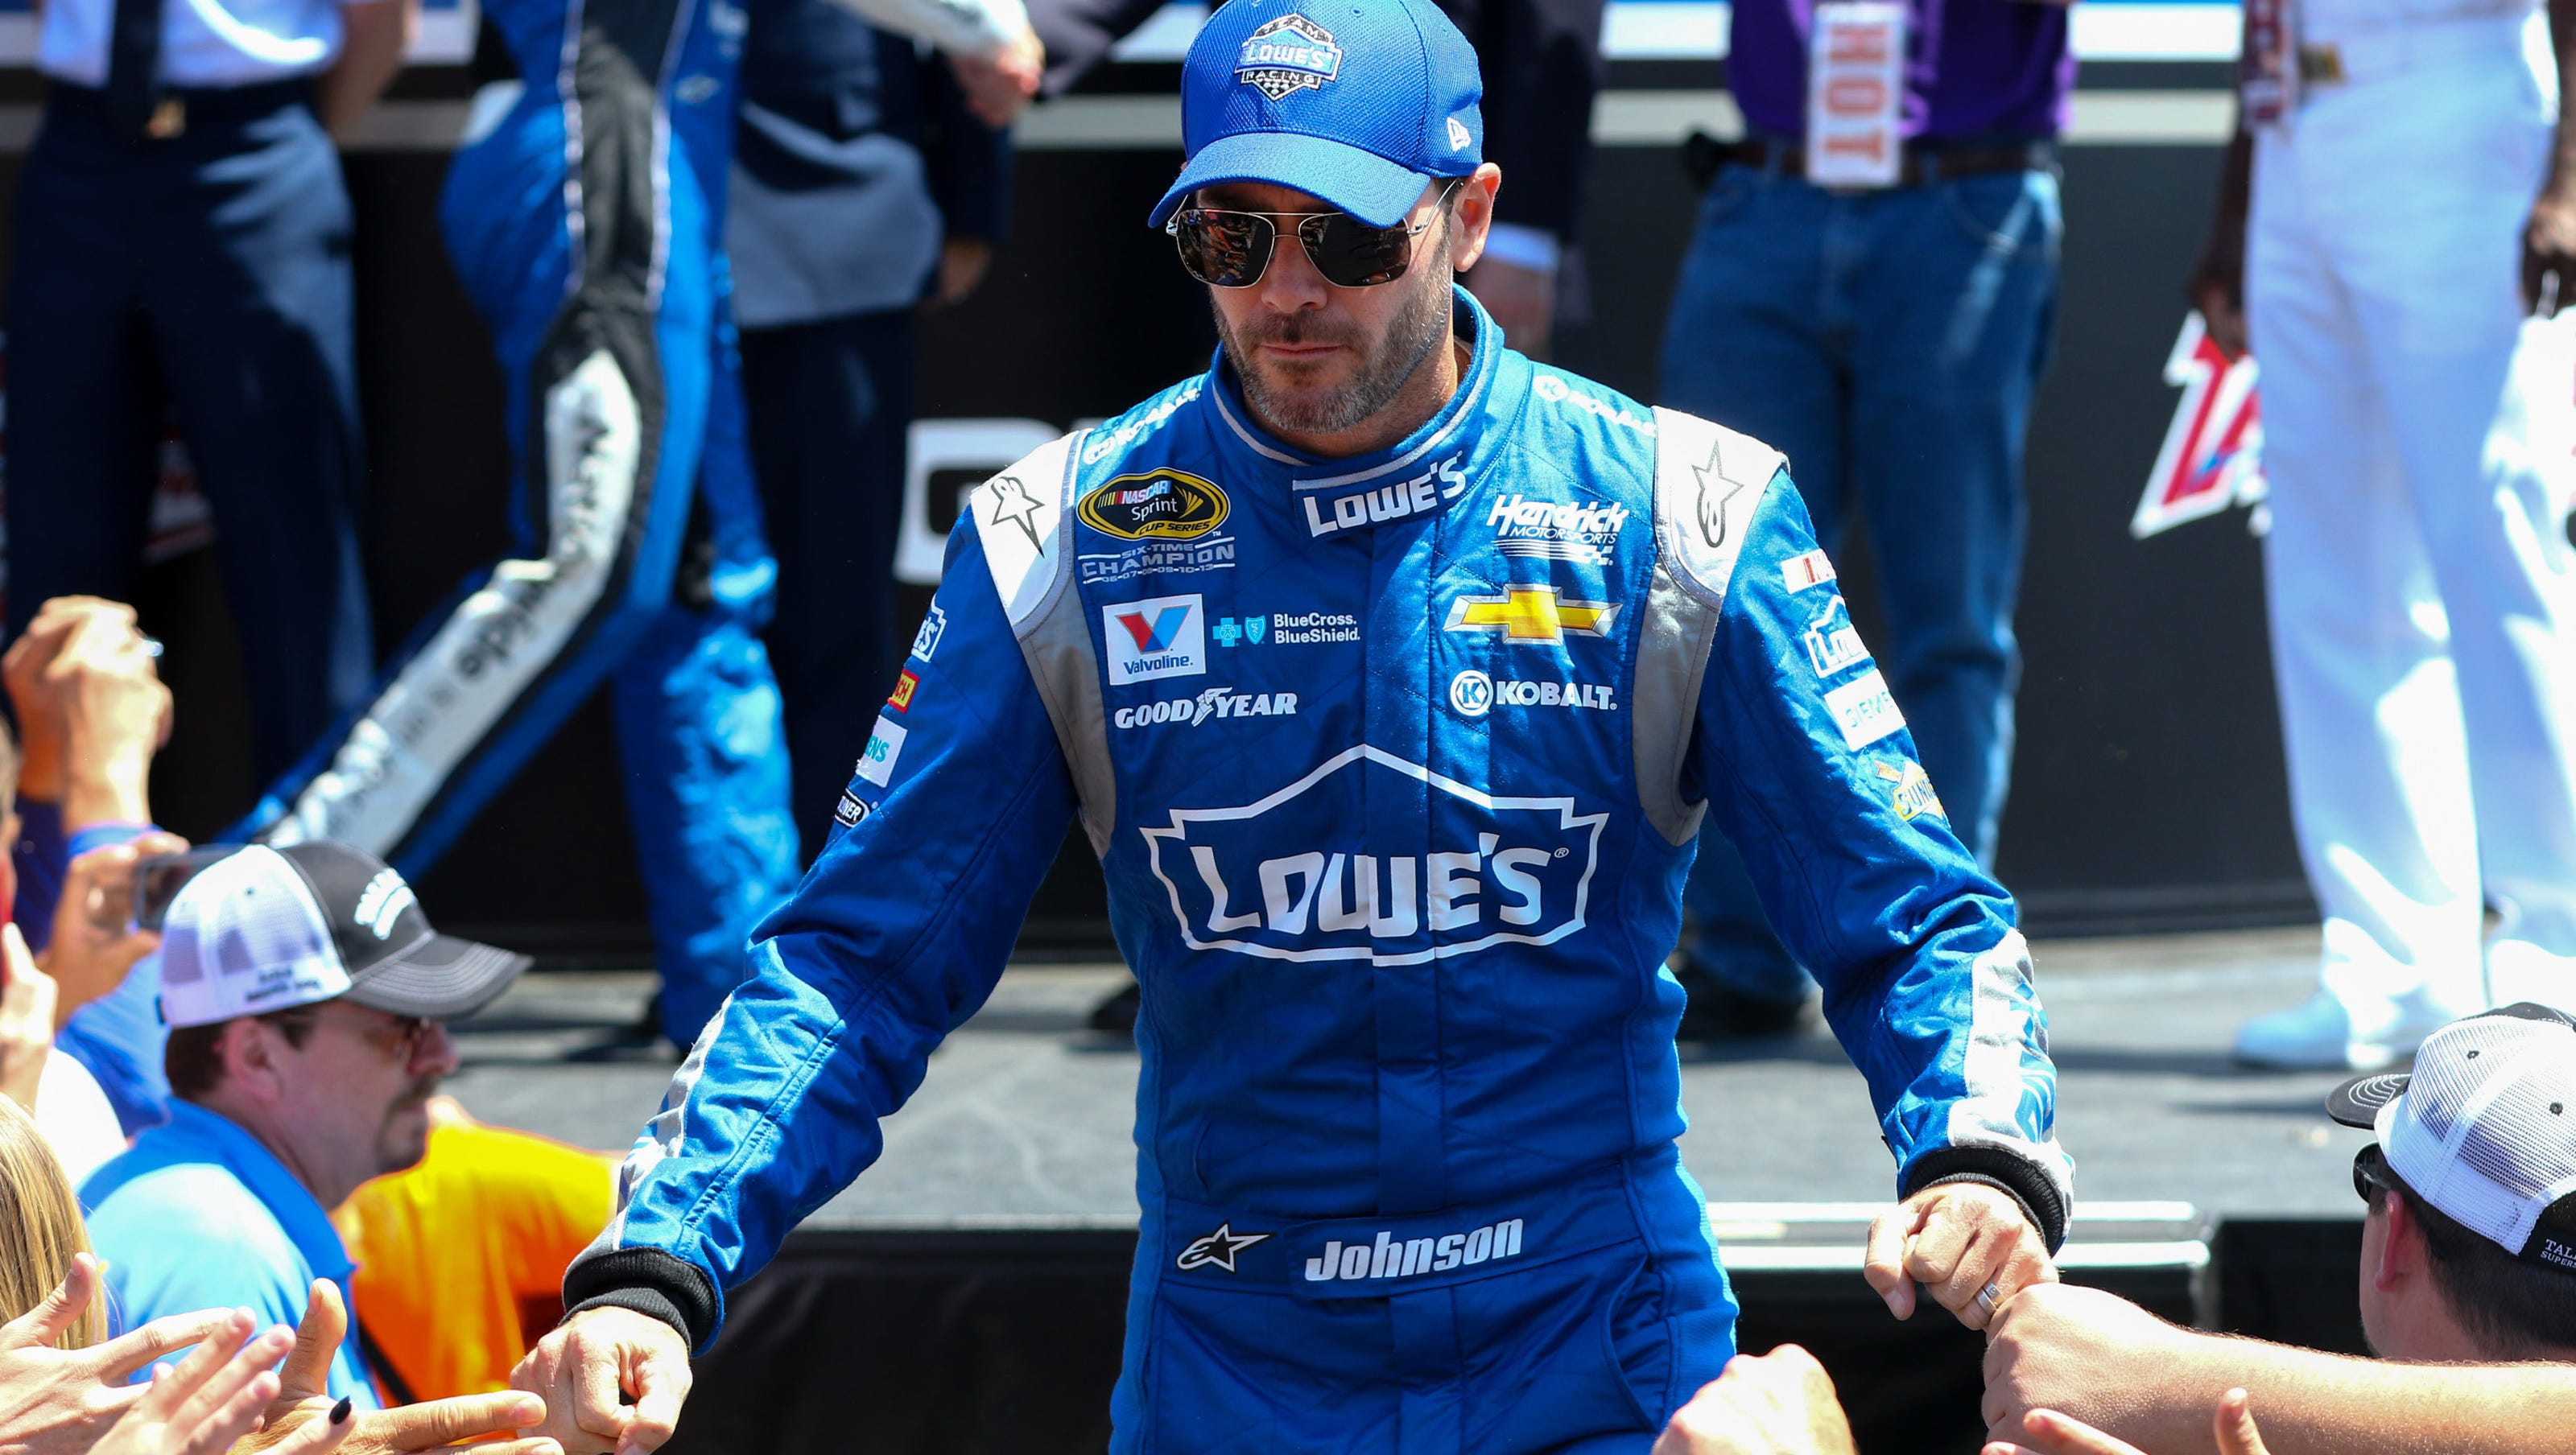 12 Questions with Jimmie Johnson